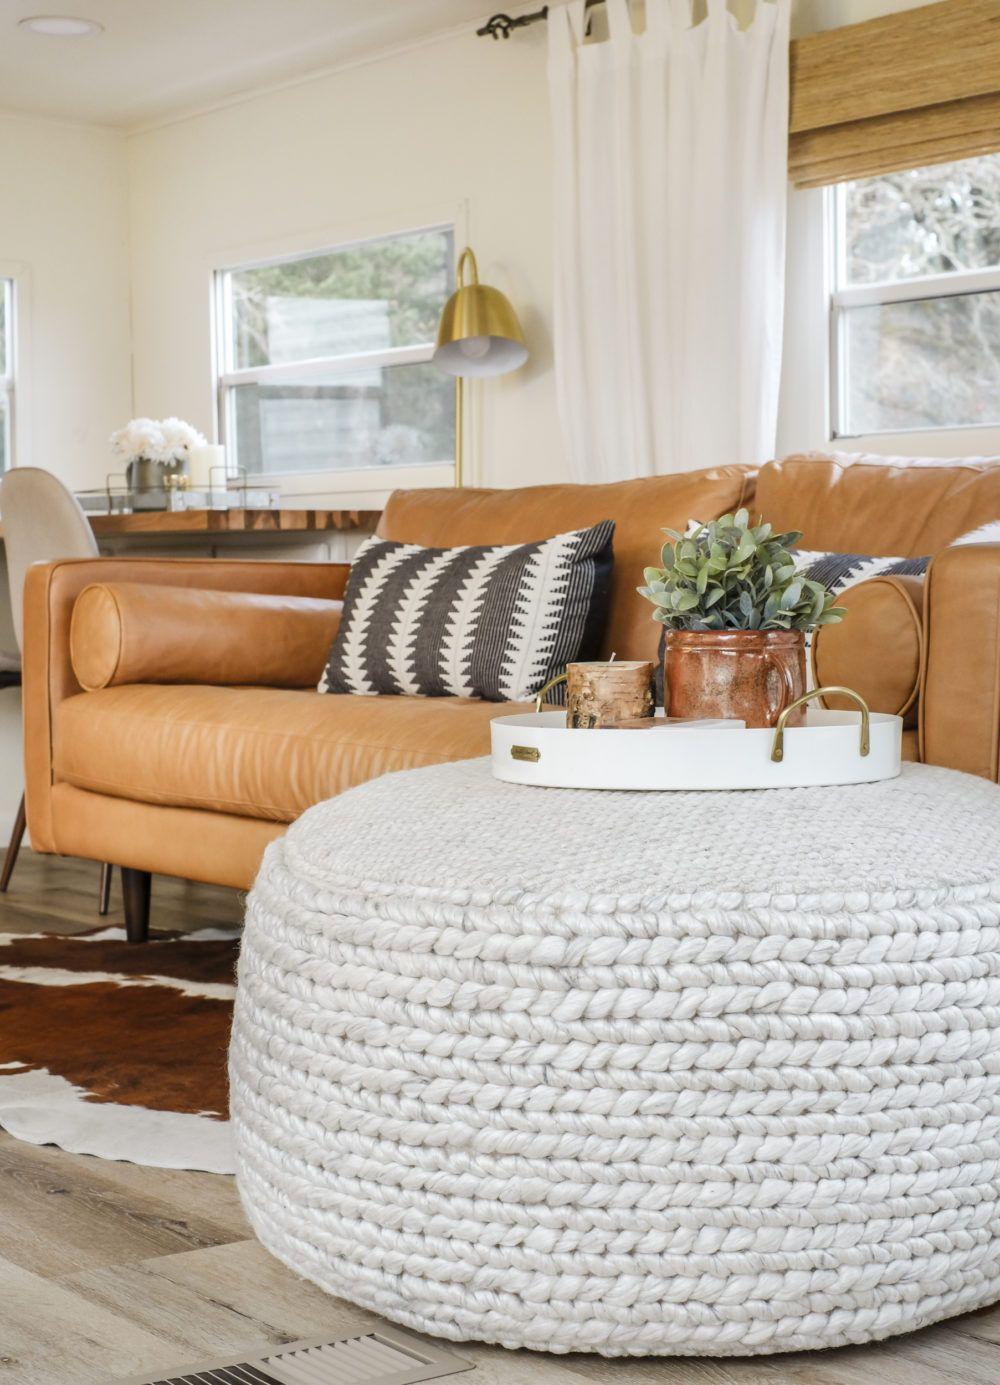 Pouf Mit Tablett Why You Need A Pouf For Your Living Room How To Style It 3